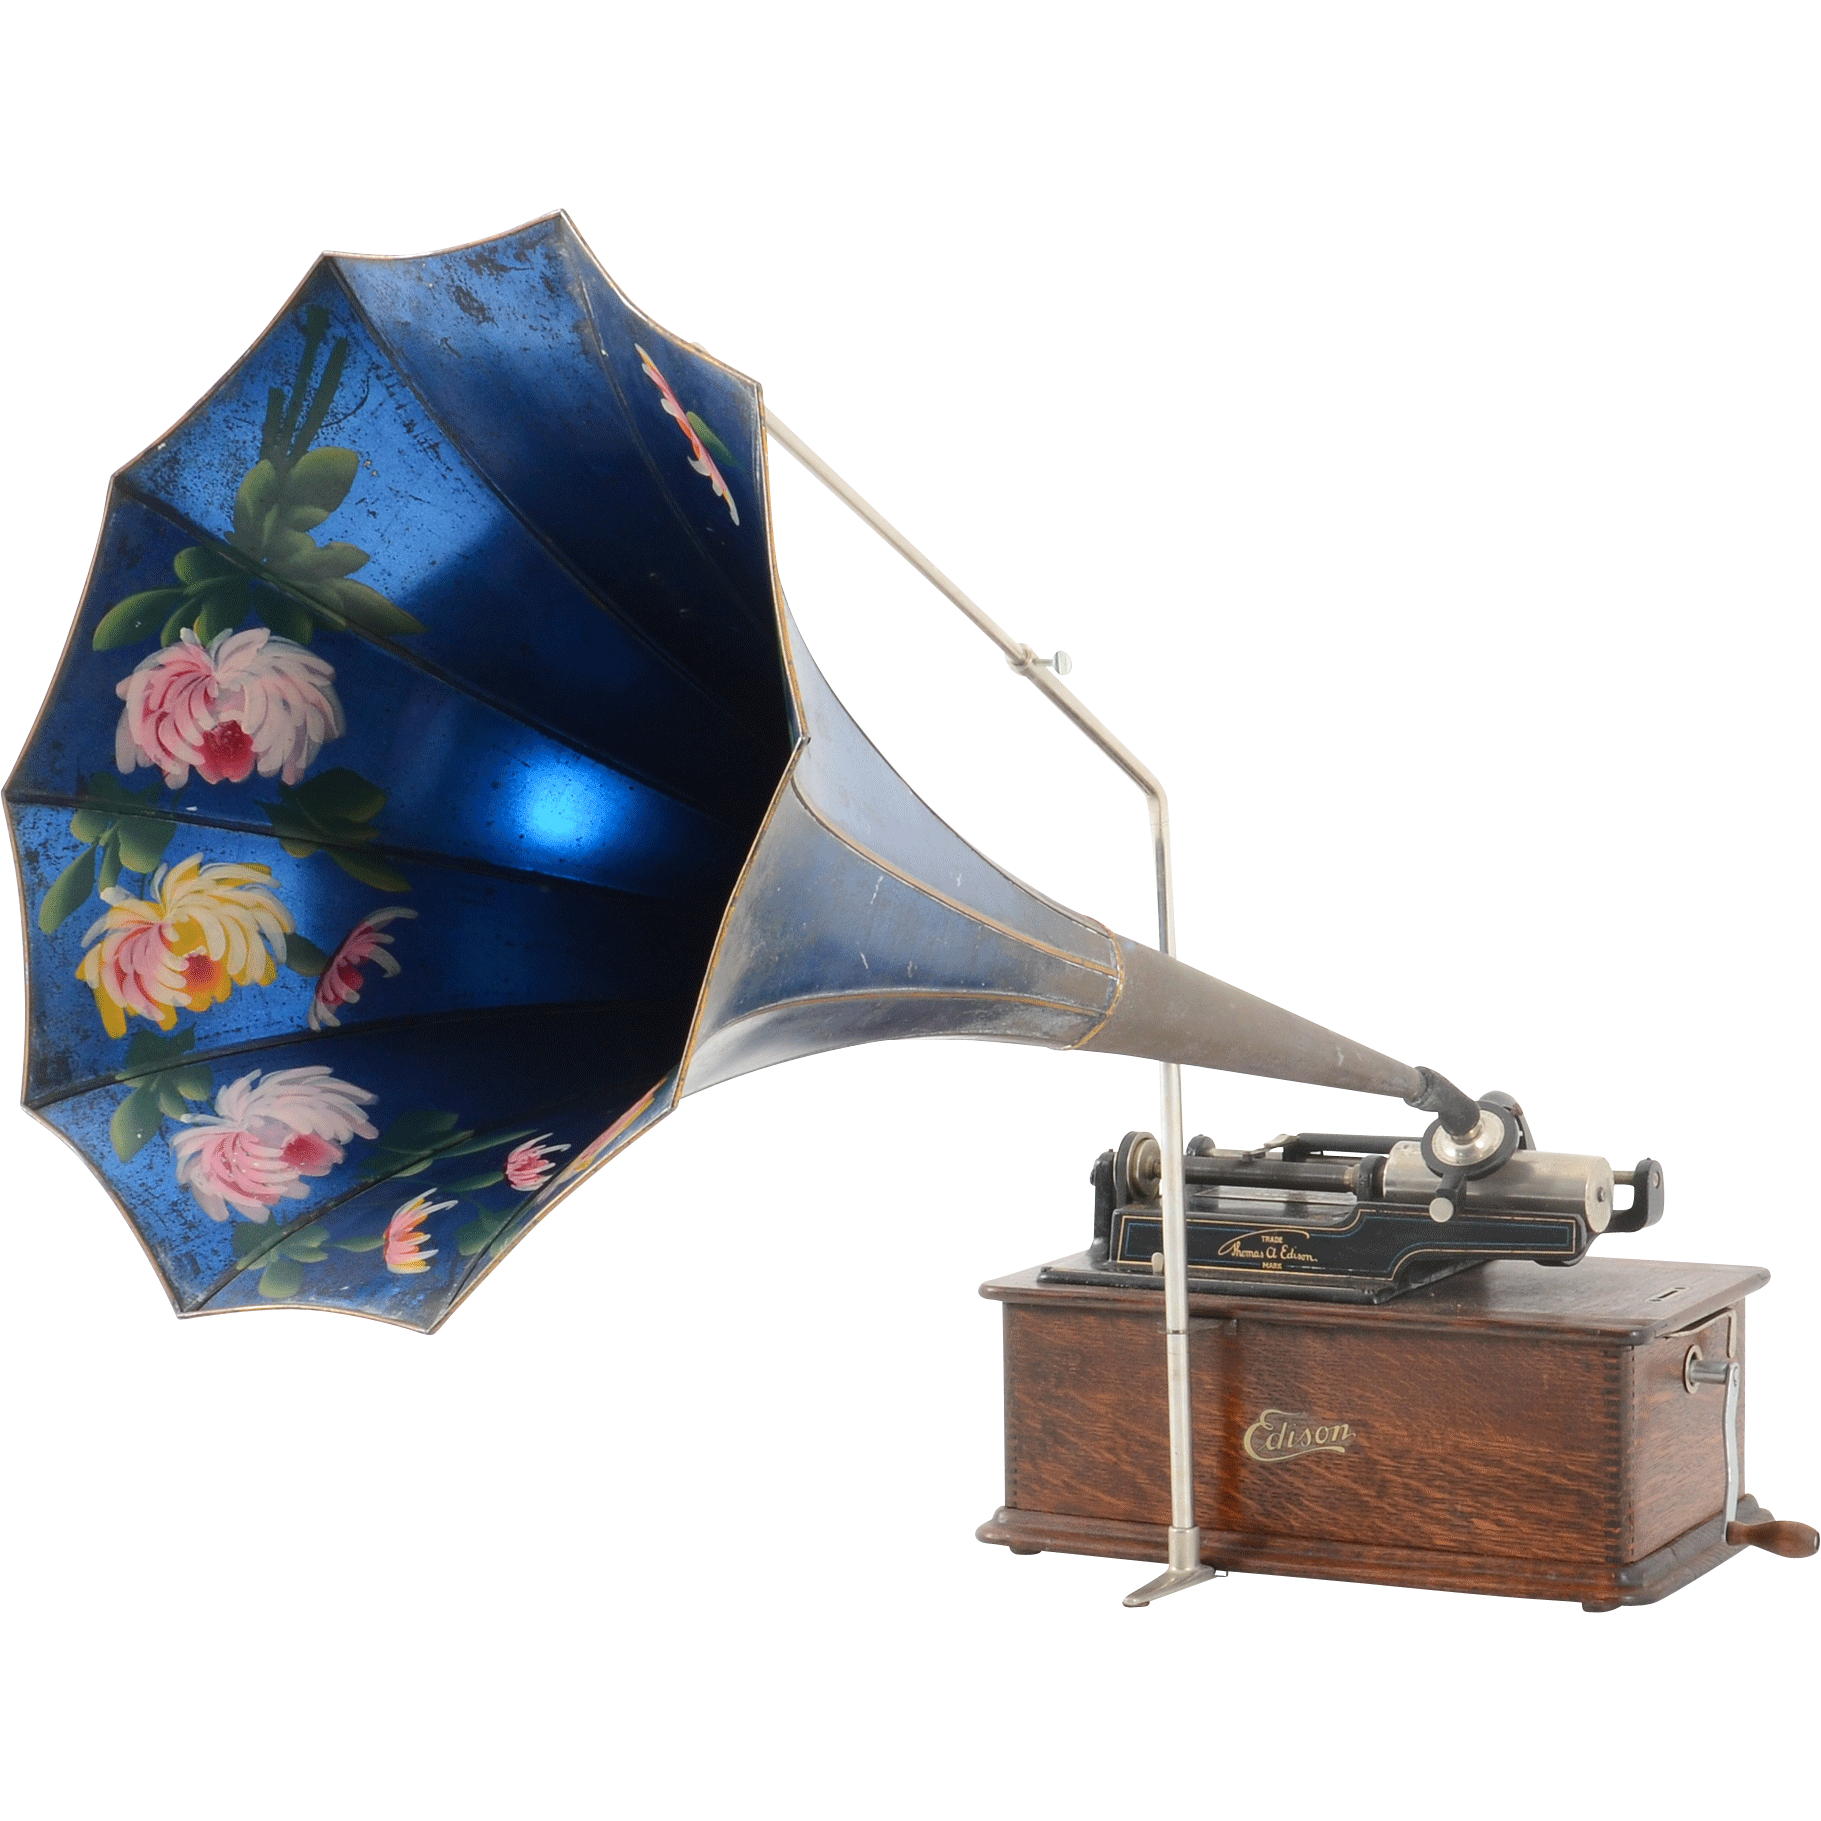 Edison Home Phonograph With Oak Cabinet and Original Morning Glory Horn